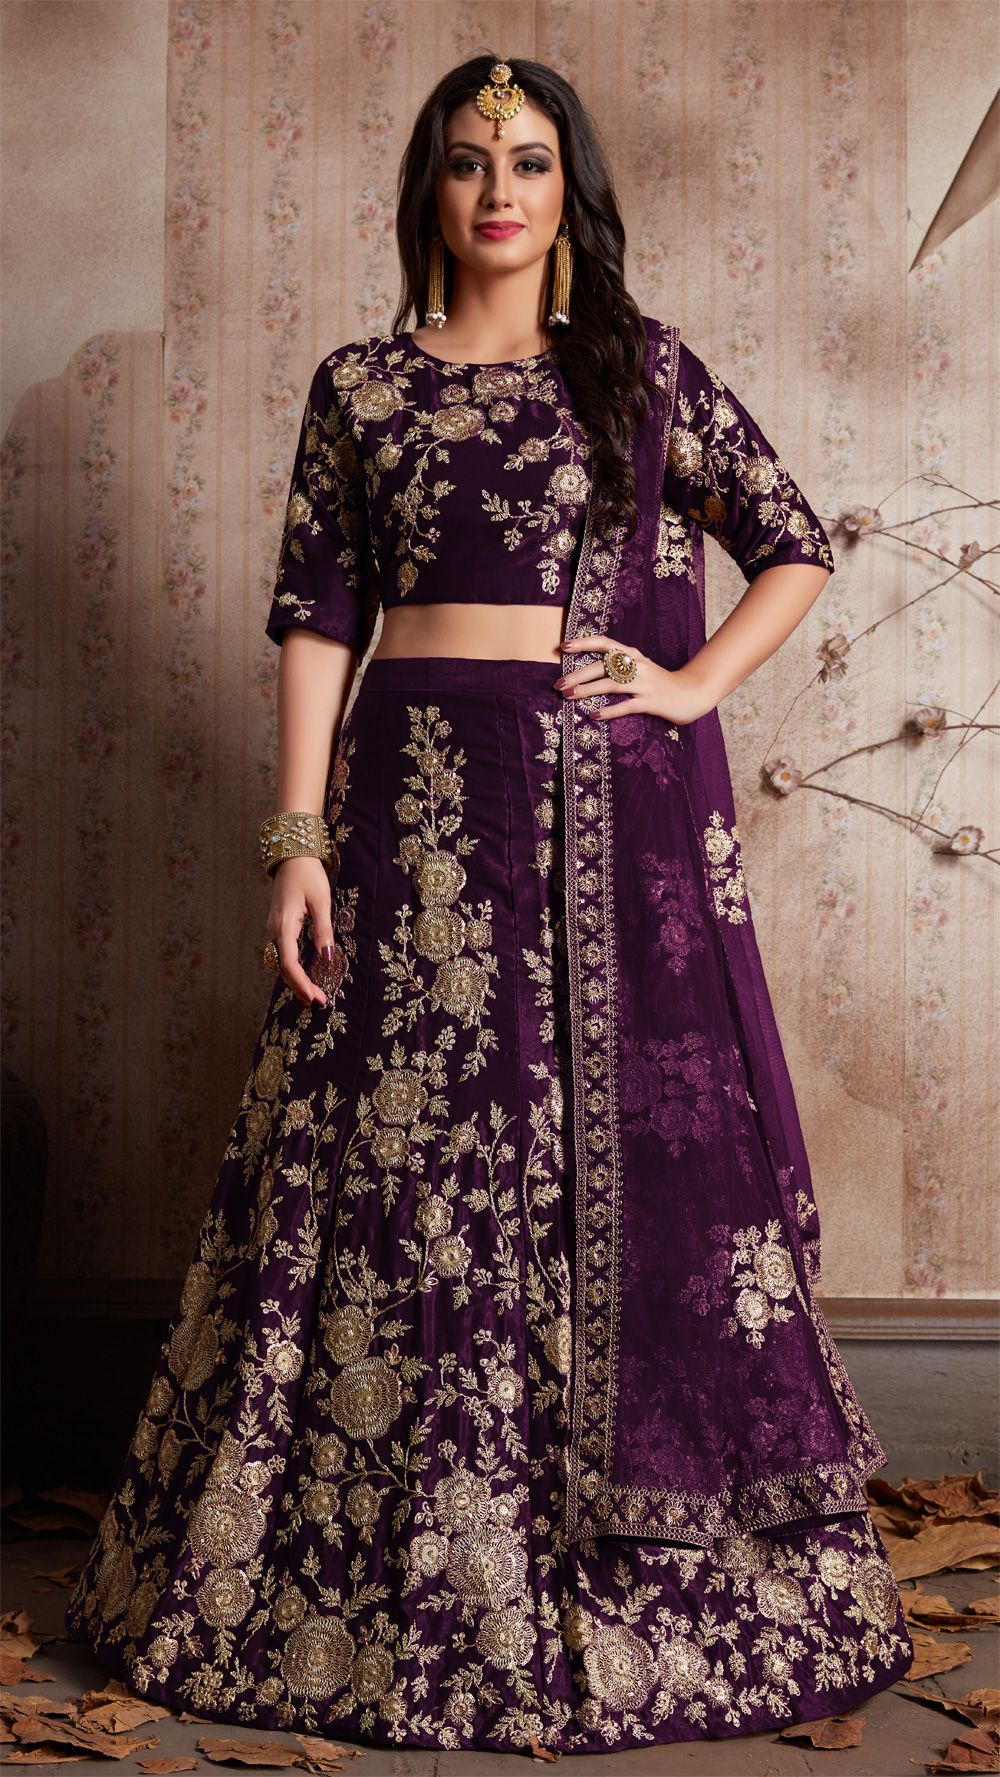 54038bbdd9 Check out the Purple Velvet Silk Lehenga Choli at #NihalFashions. Discount  & Free shipping all over India. Use Coupon Code: OCT2018 #WomensFashion  #Fashion ...